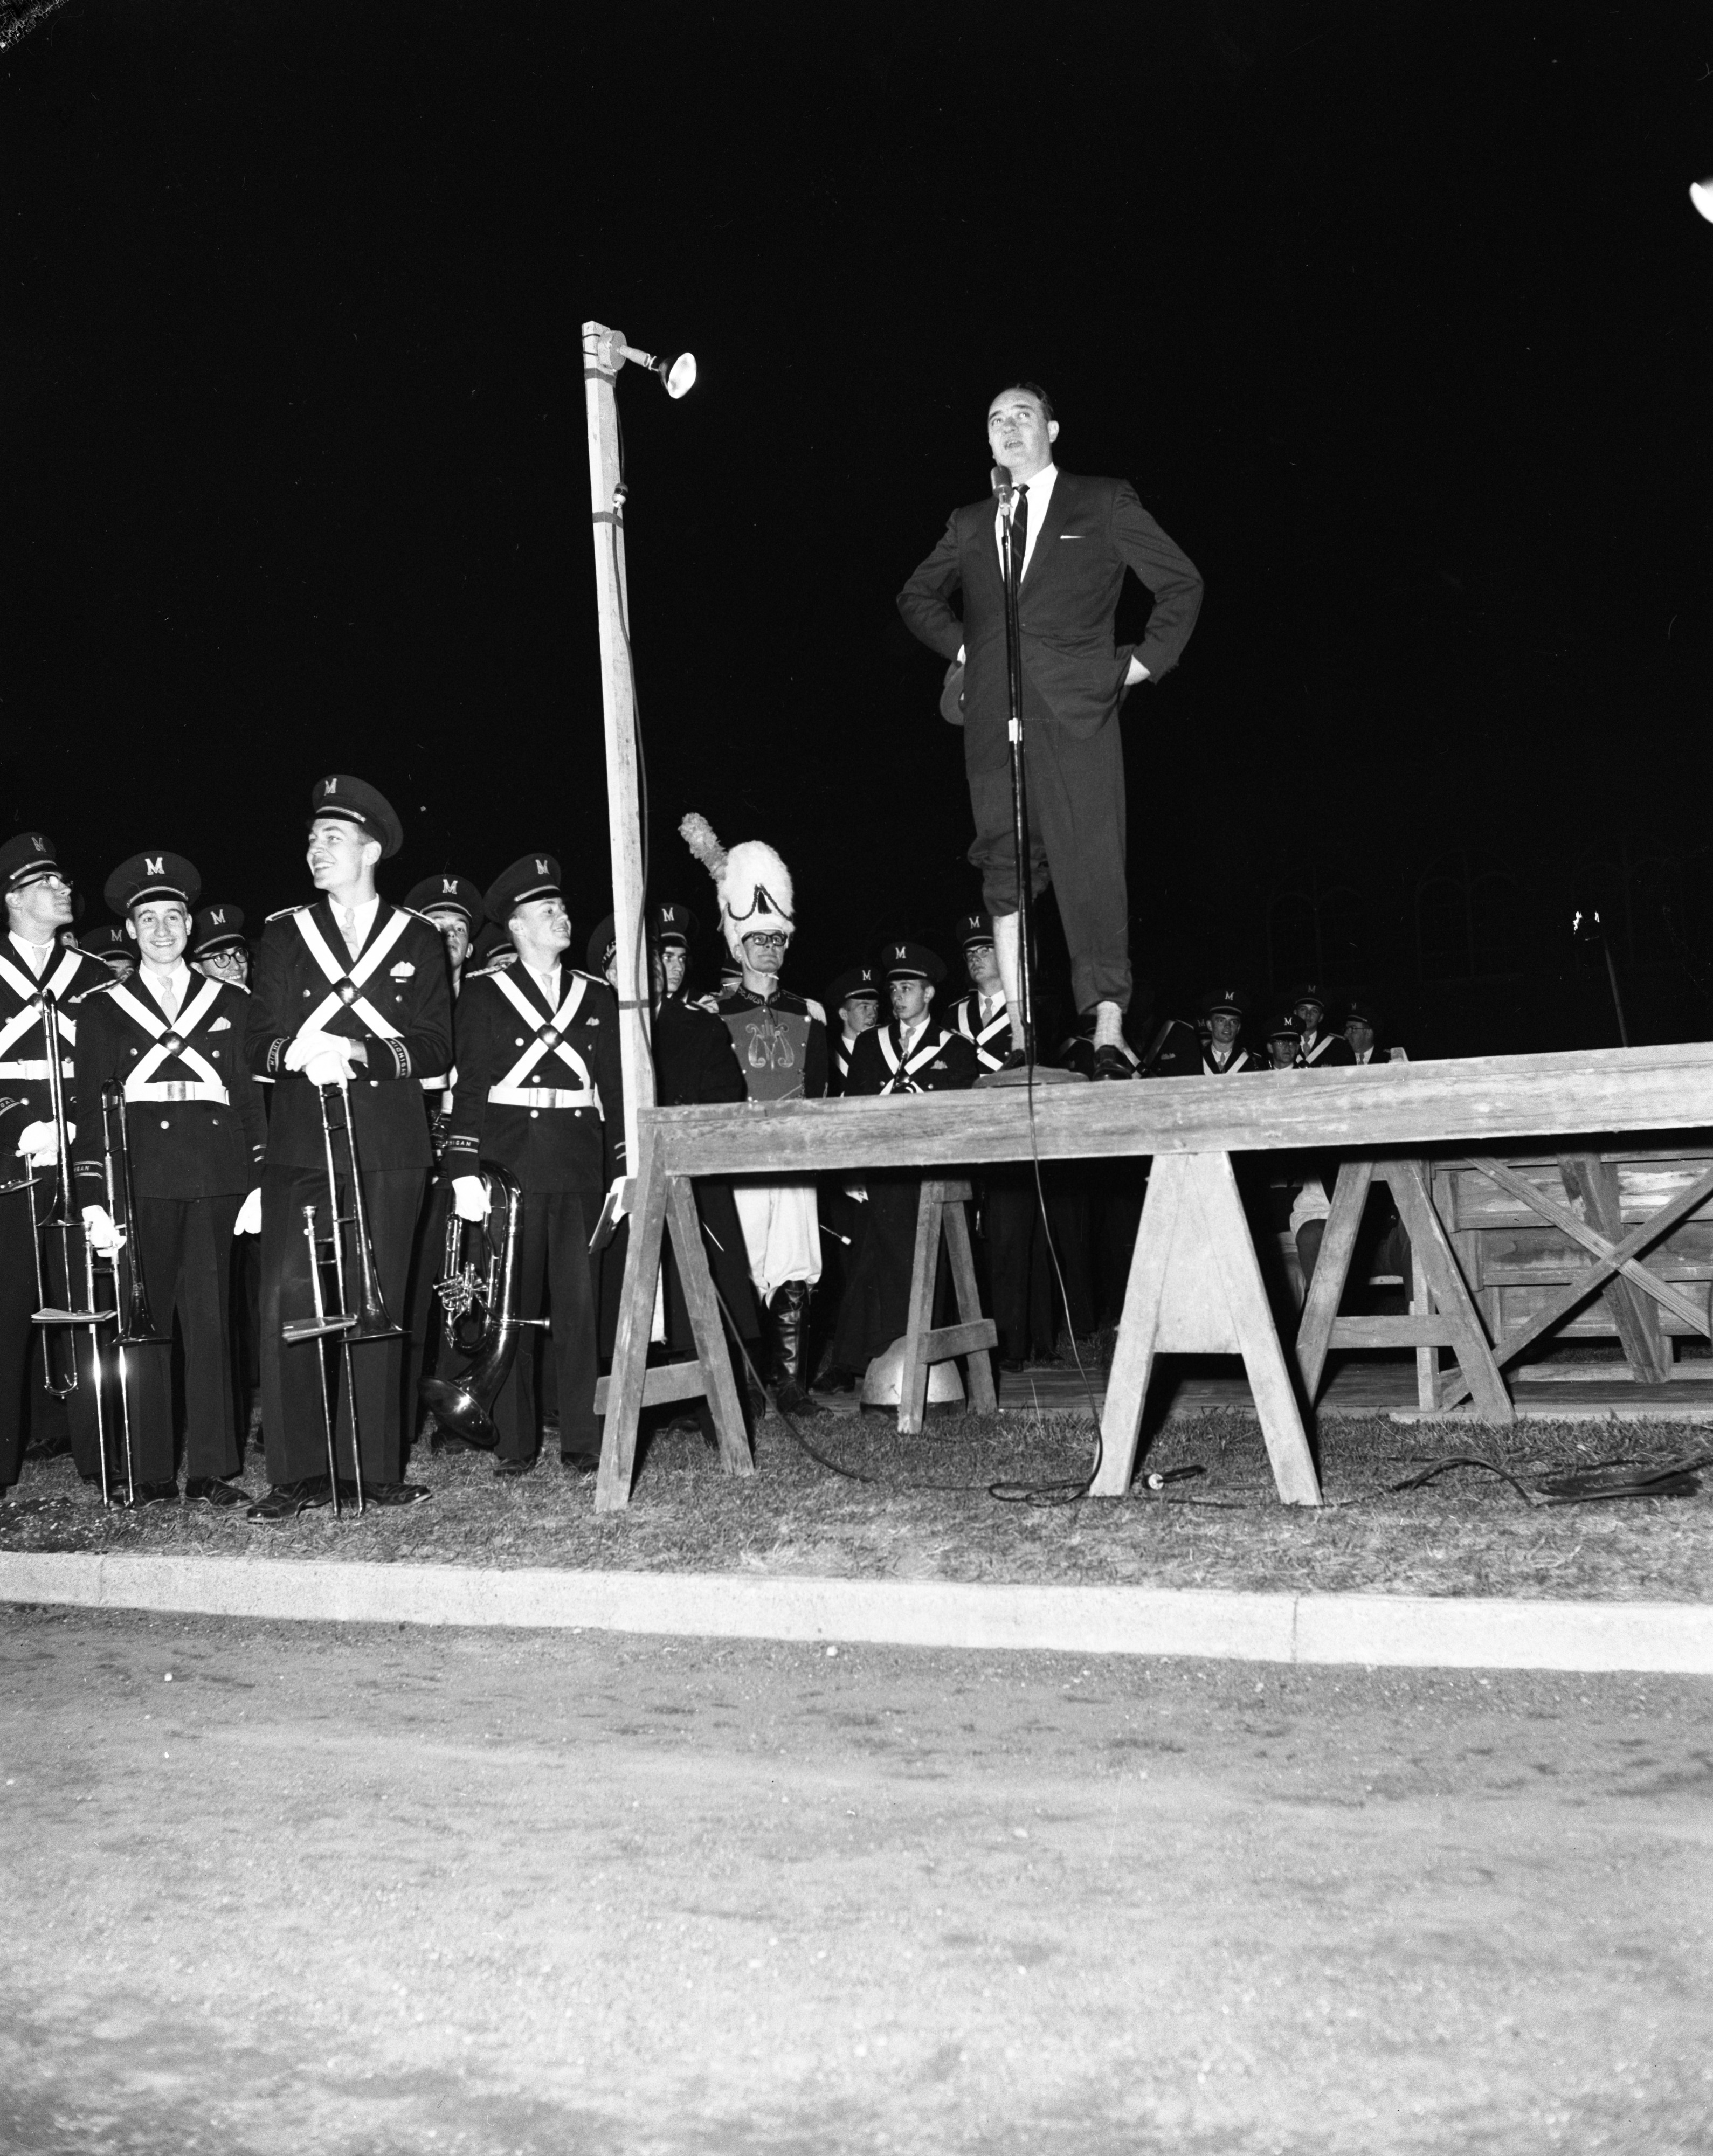 Sportscaster Mel Allen joins the University of Michigan Band for a pep rally, November 1958 image